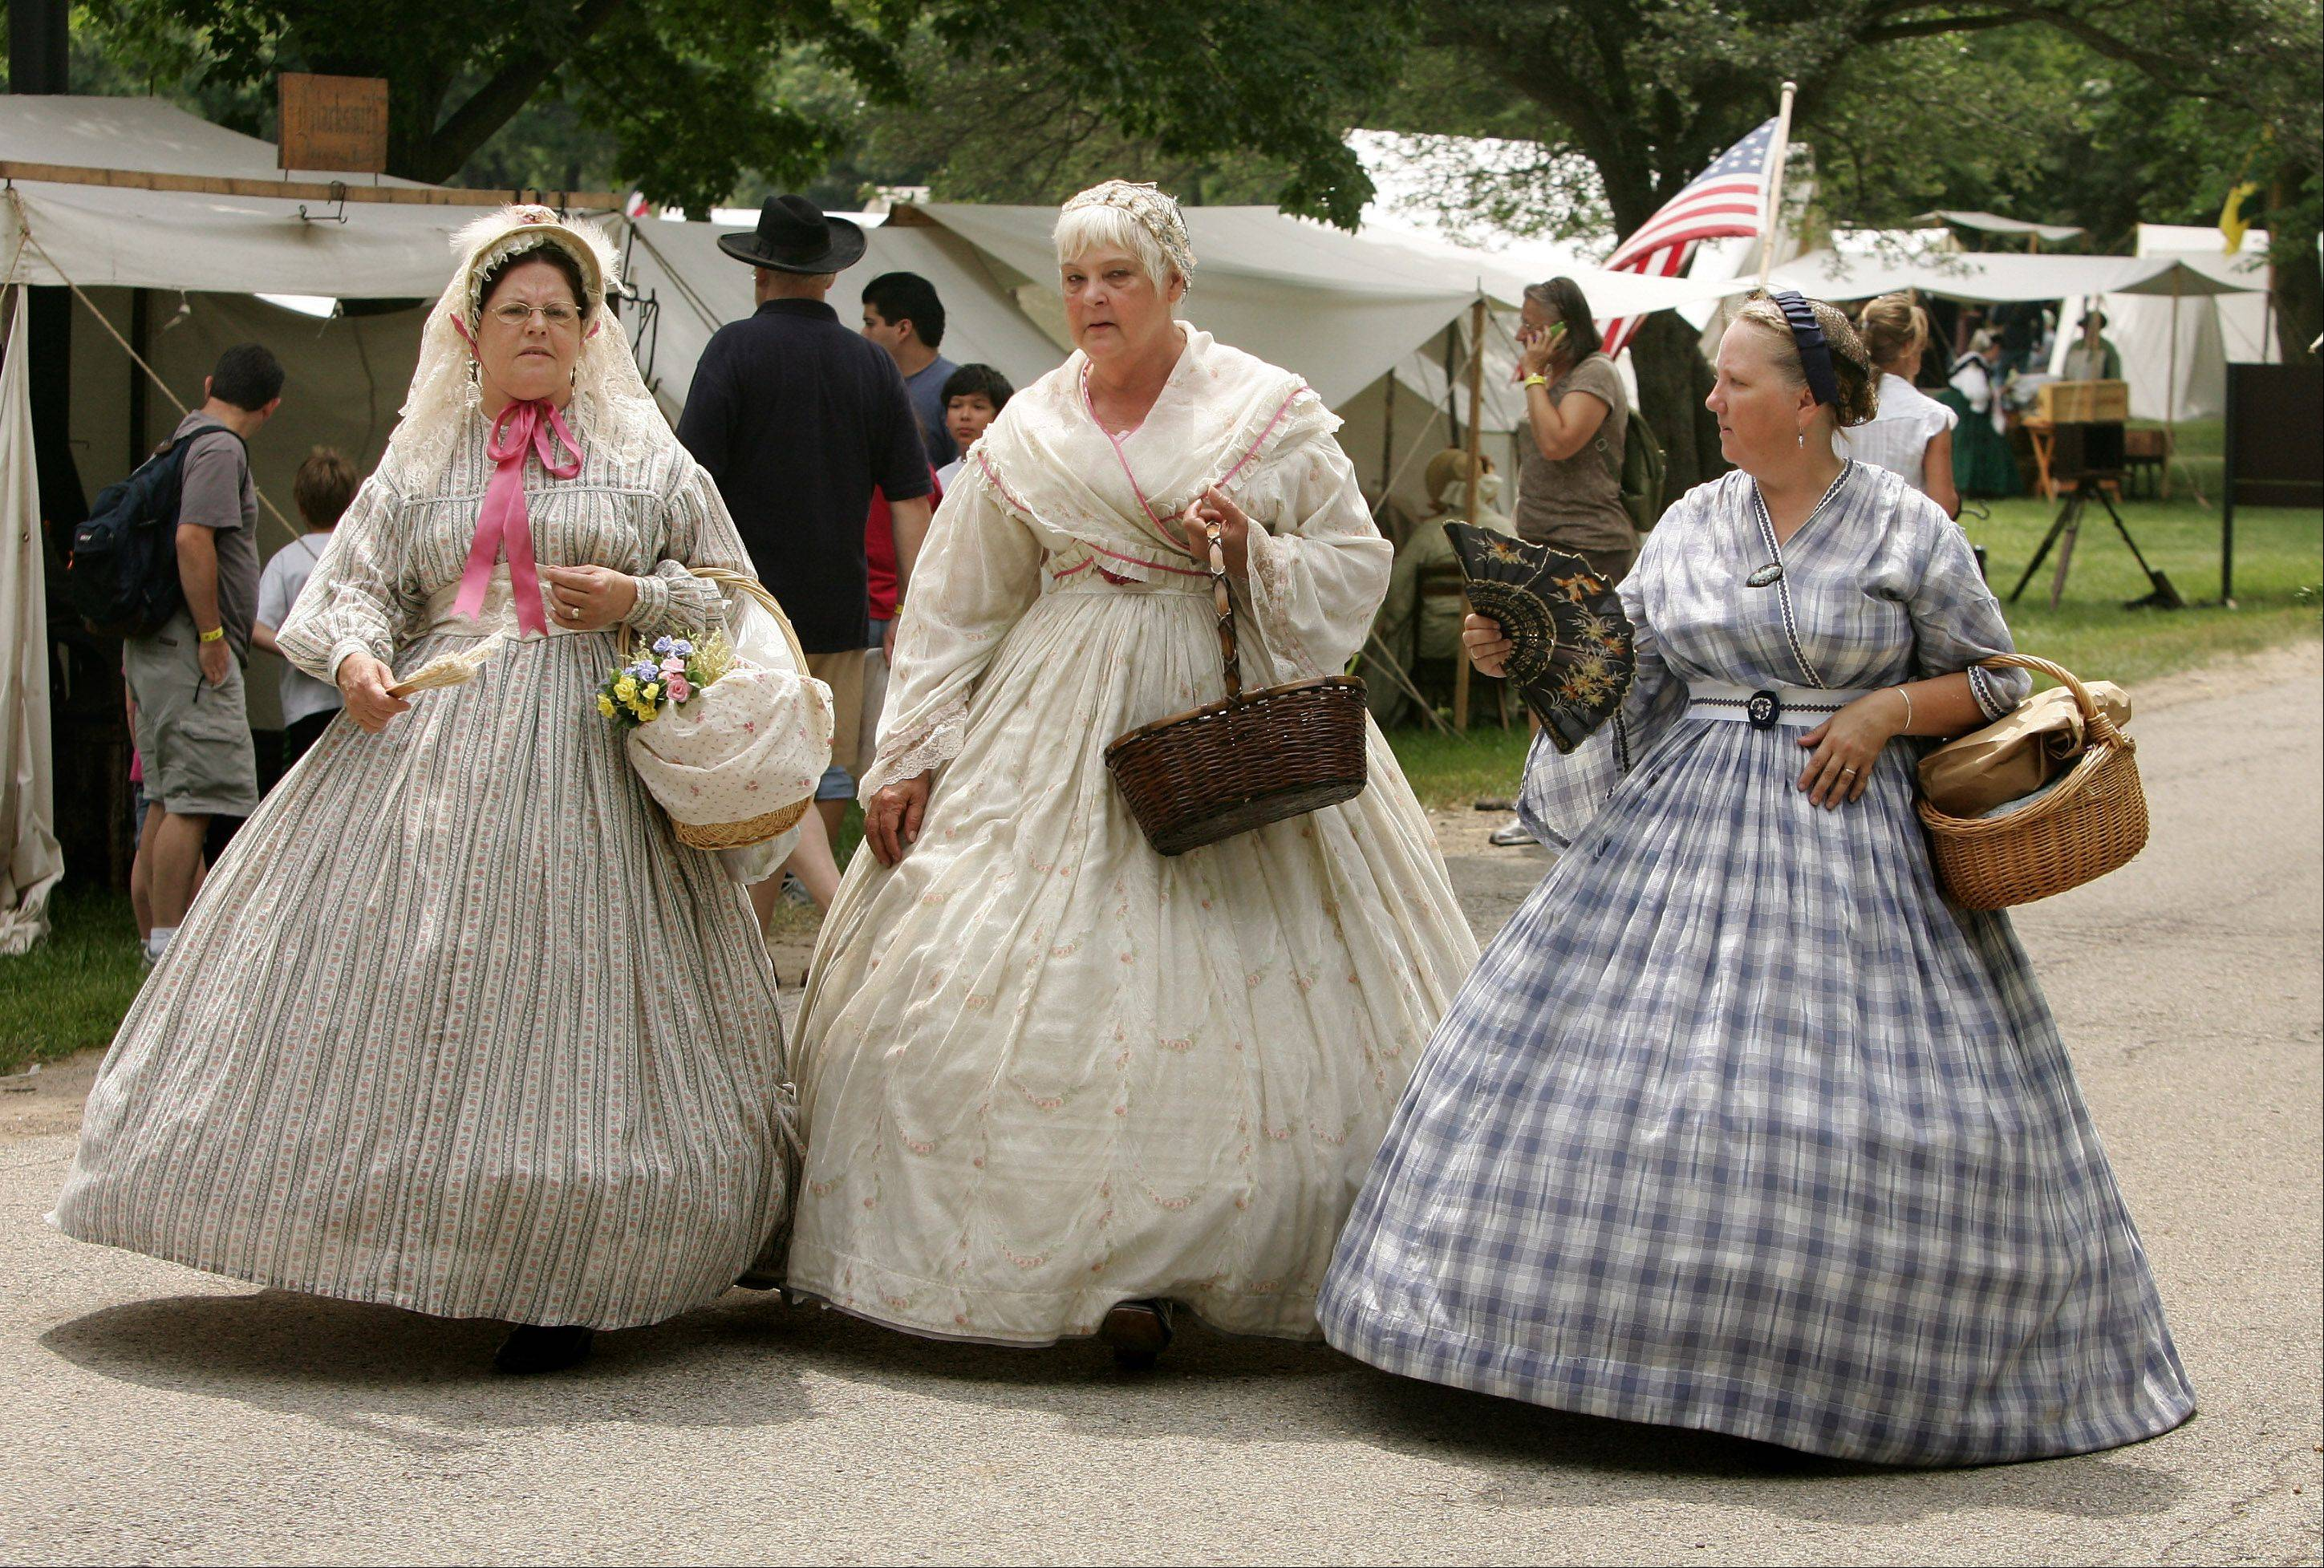 Rose Brown of Prospect Heights, left, Bobie Webber of Chicago, and Jill Pontillo of Lake Villa walk through camp during last year's Civil War Days at Lakewood Forest Preserve near Wauconda.